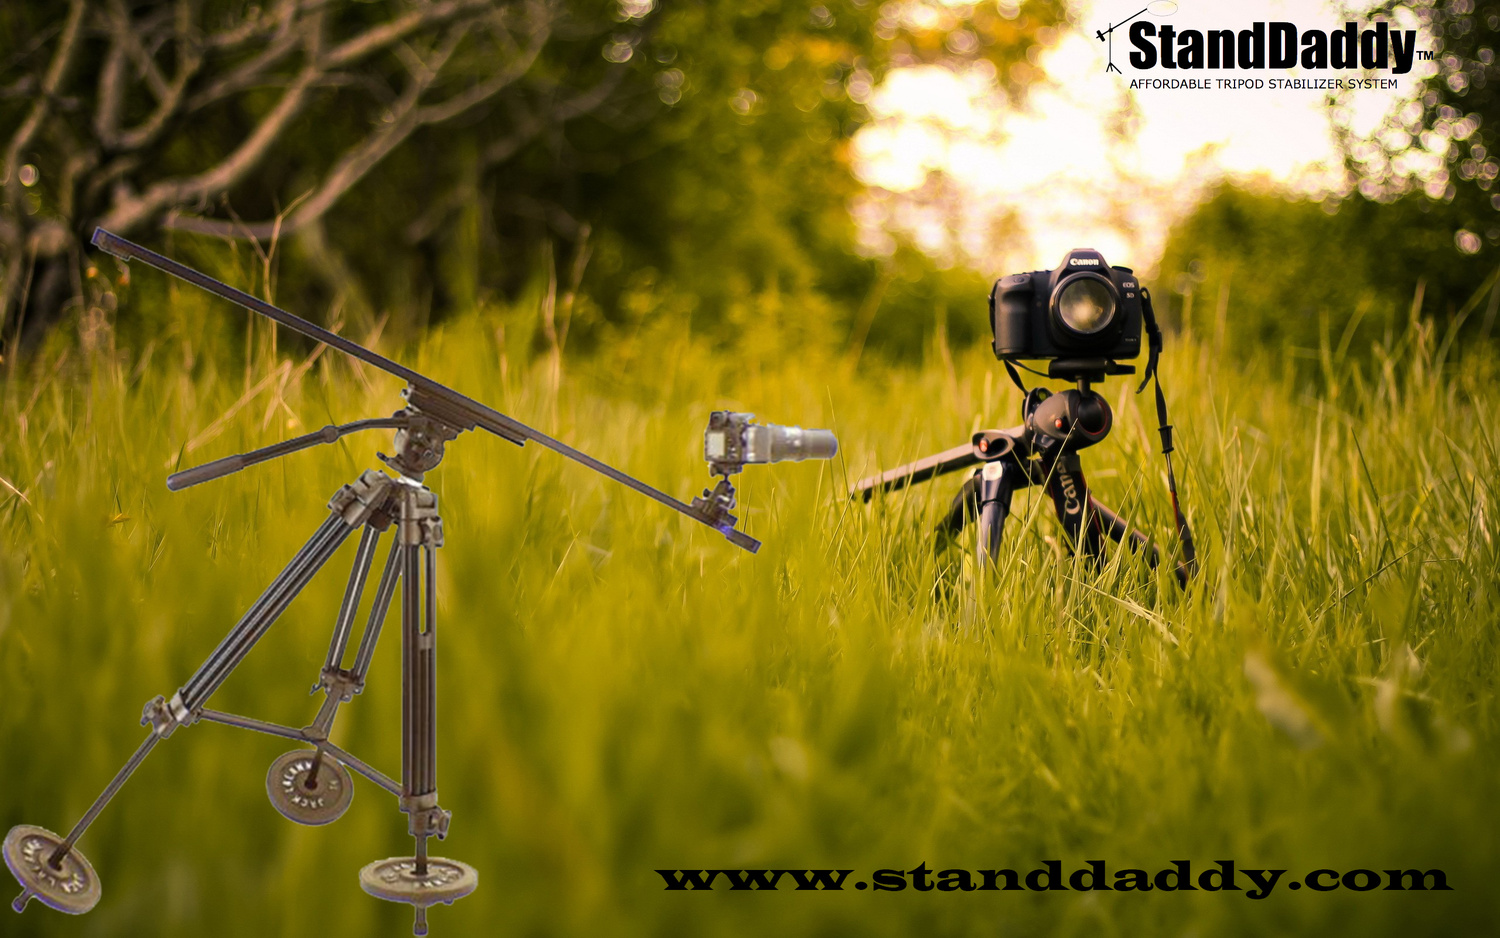 StandDaddy Tripod Stabilizing System by Pat Green